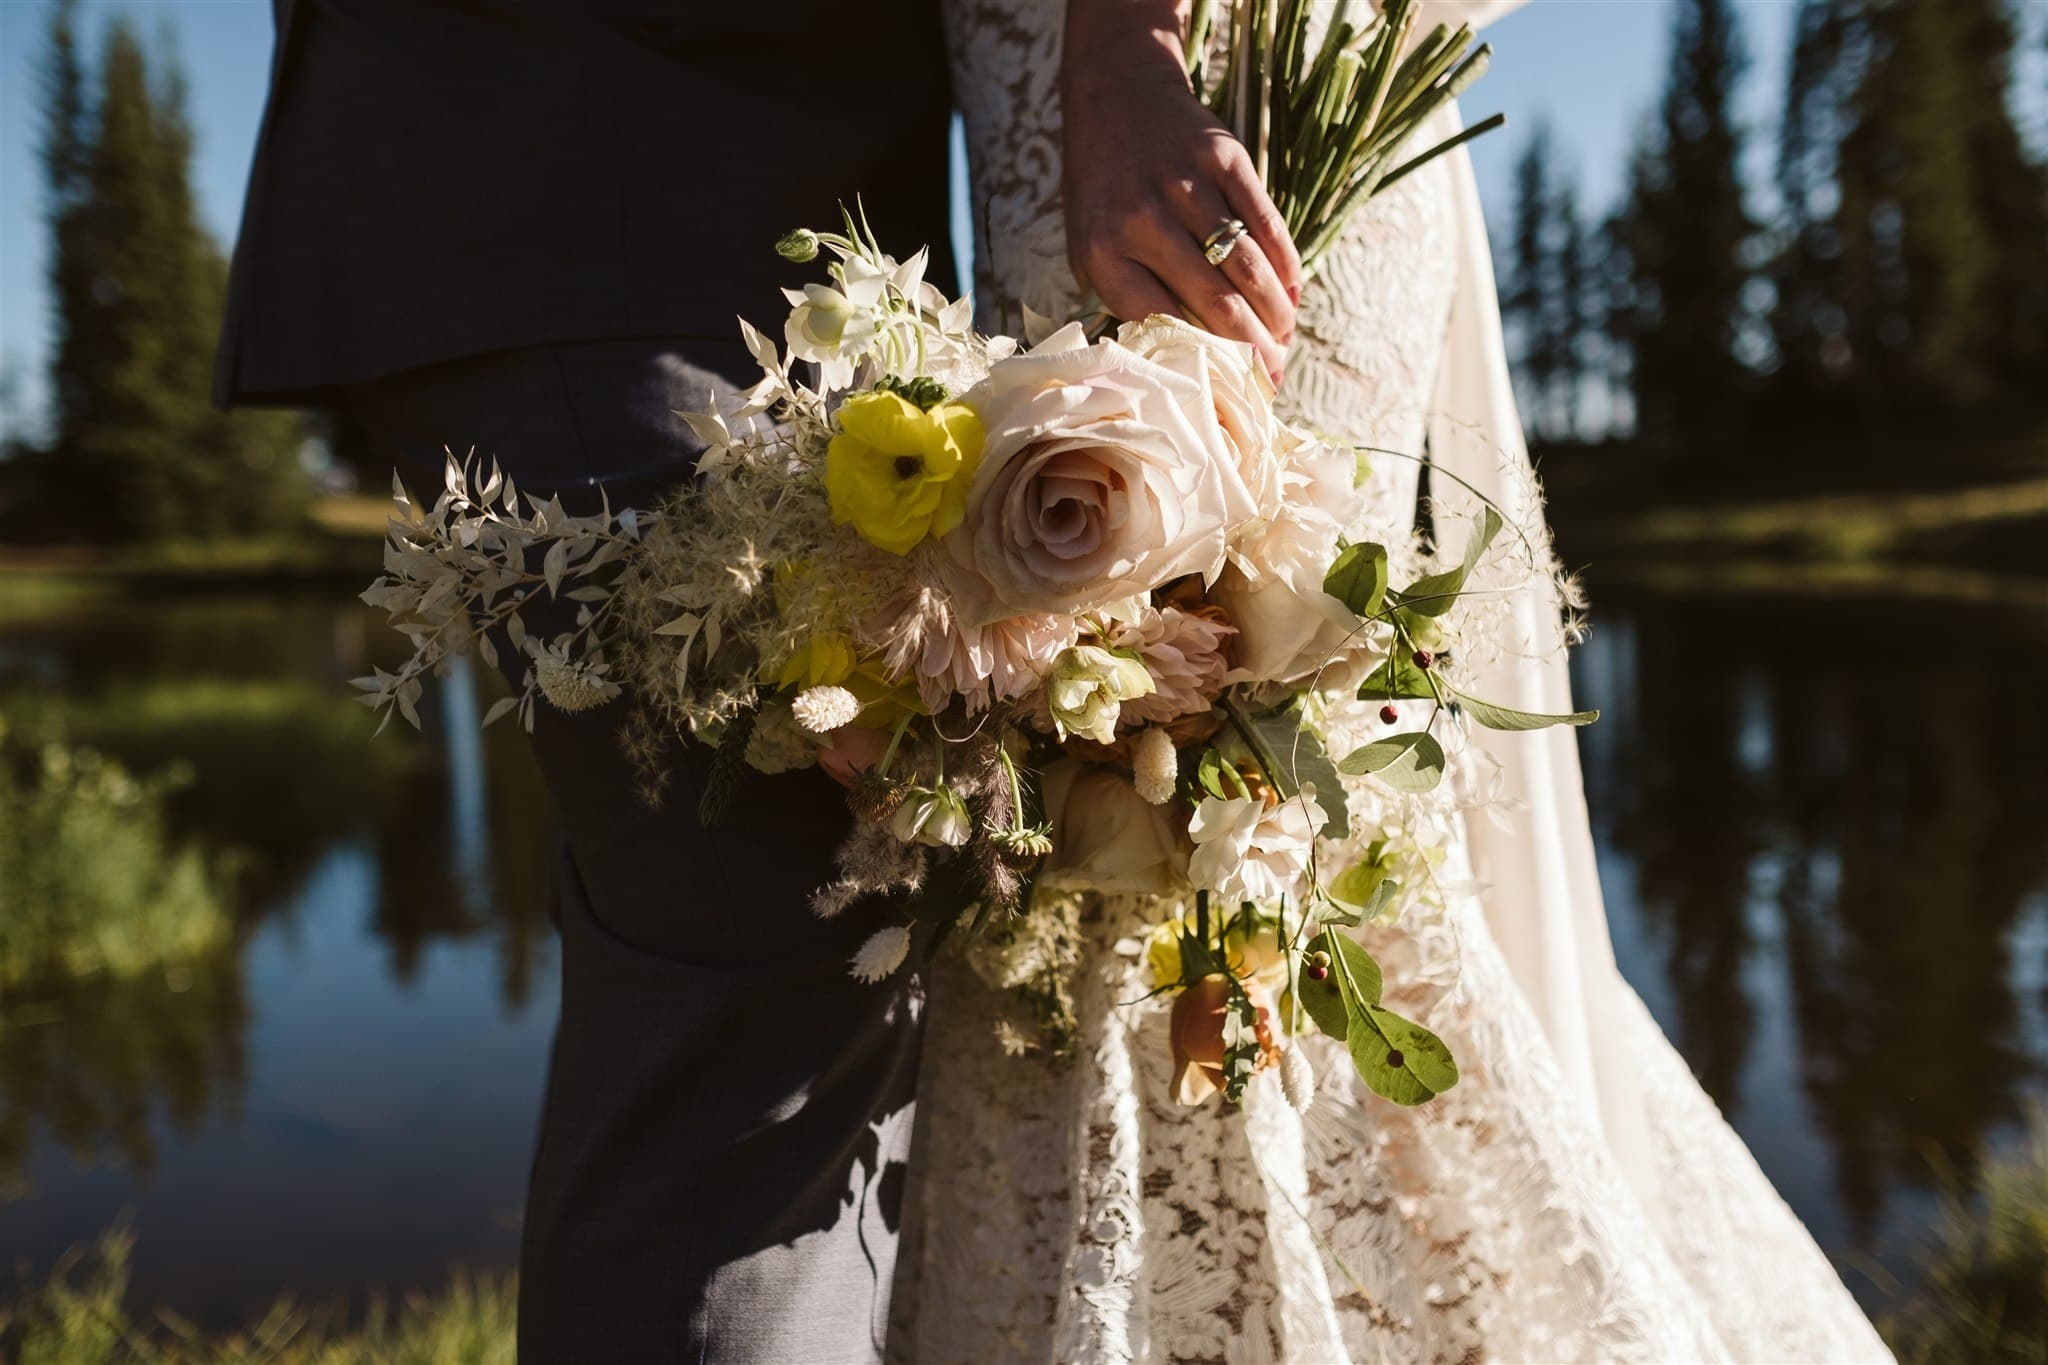 Elopement bouquet by Fin + Ally best Colorado wedding florist in Crested Butte